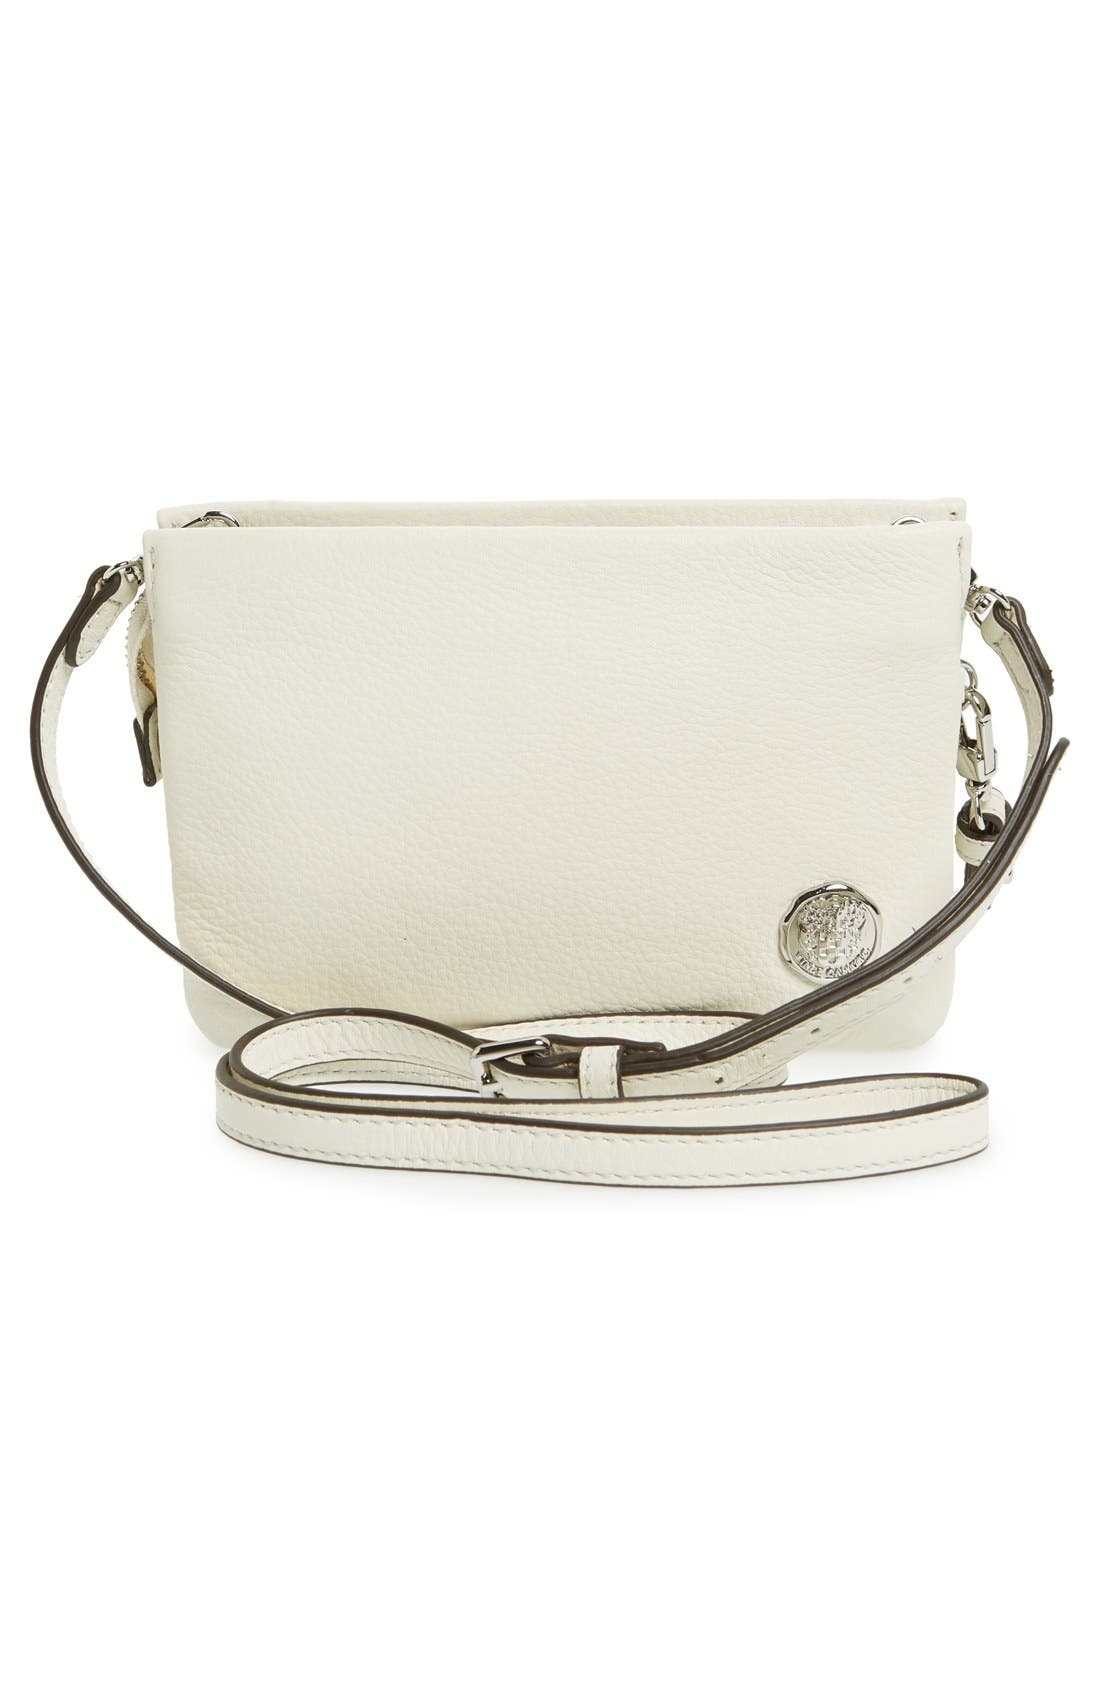 'Cami' Leather Crossbody Bag,                             Alternate thumbnail 77, color,